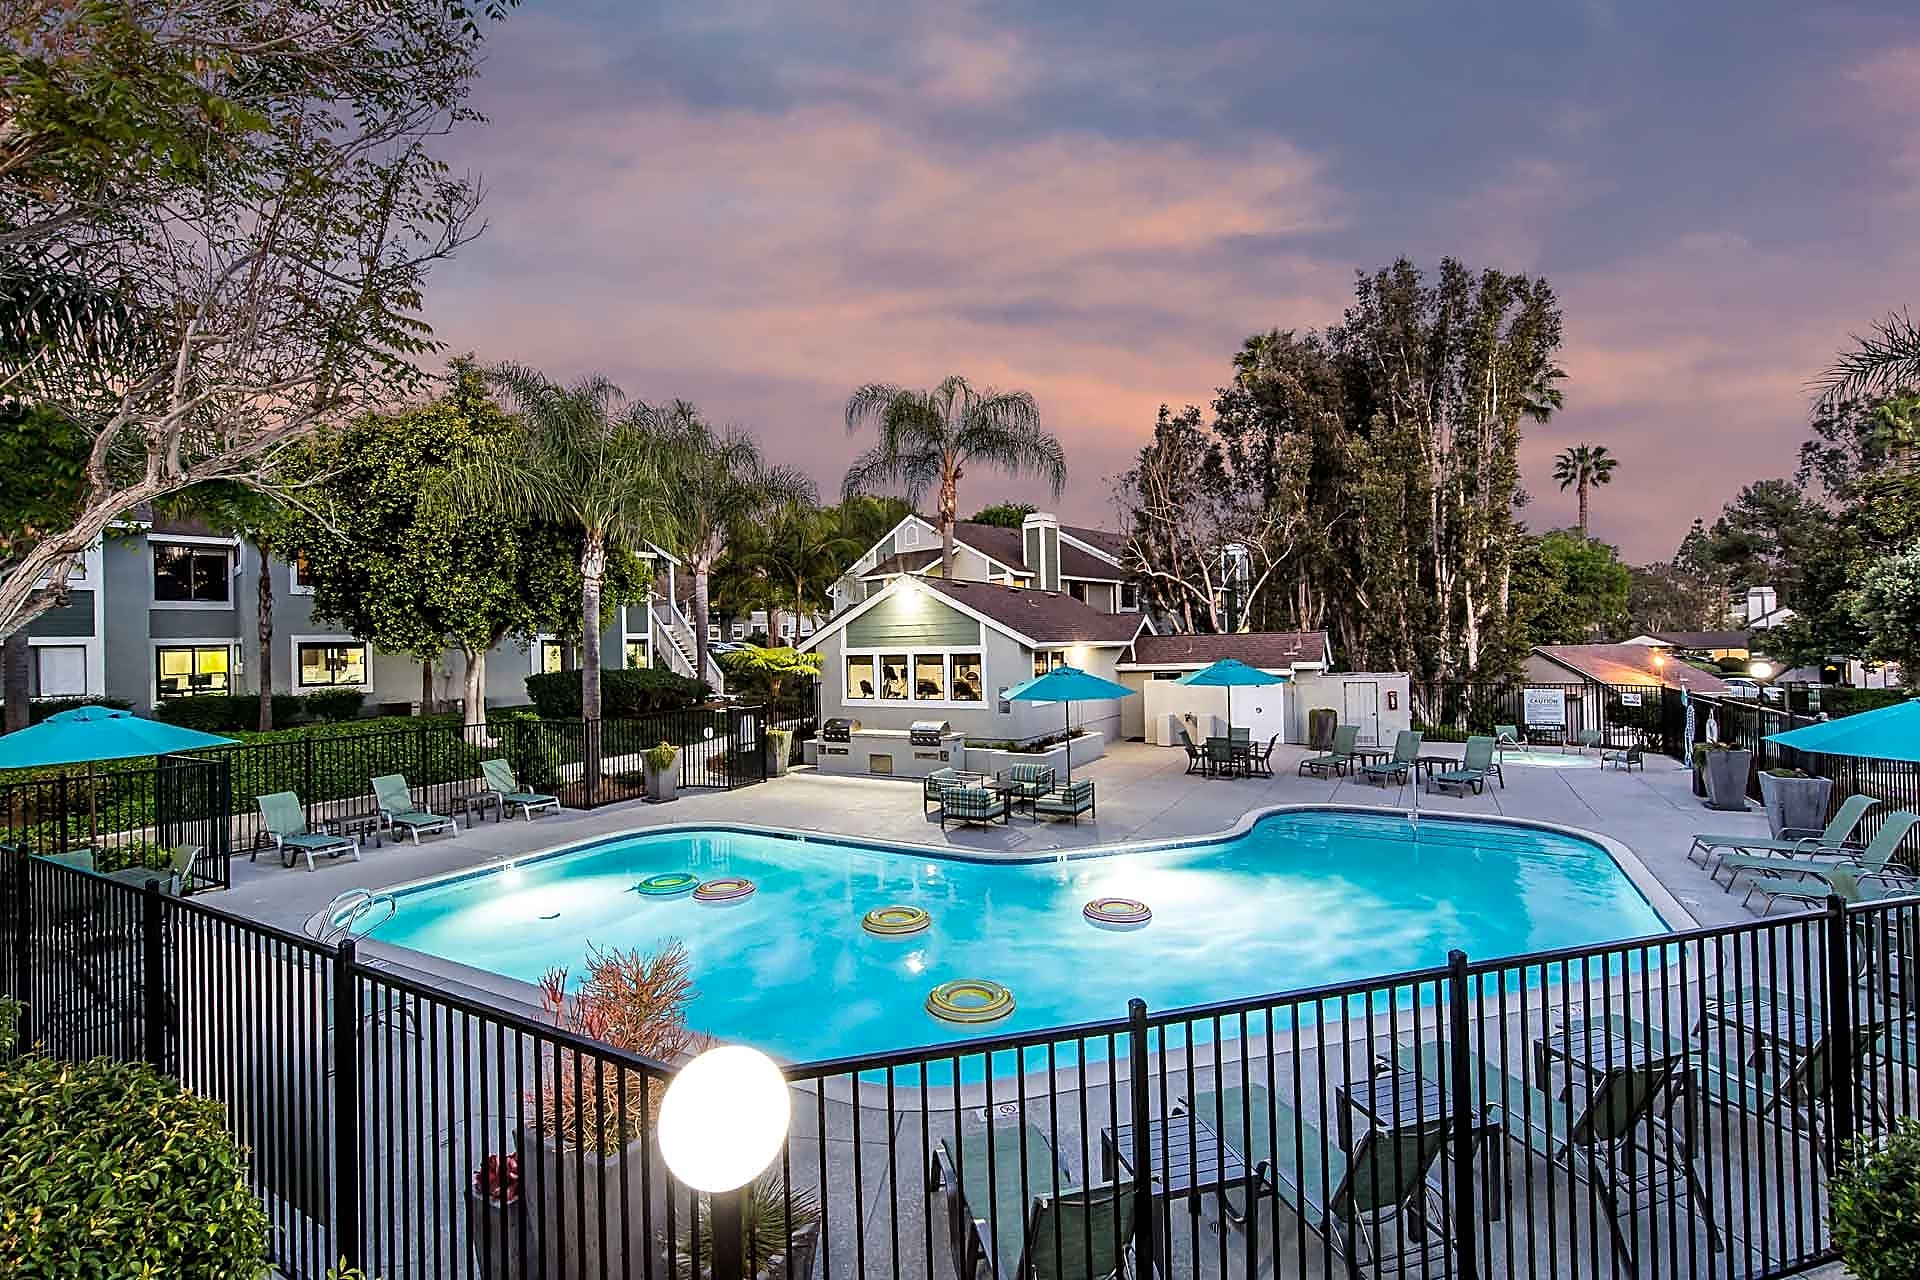 Apartments Near Palomar Sycamore Greens for Palomar College Students in San Marcos, CA